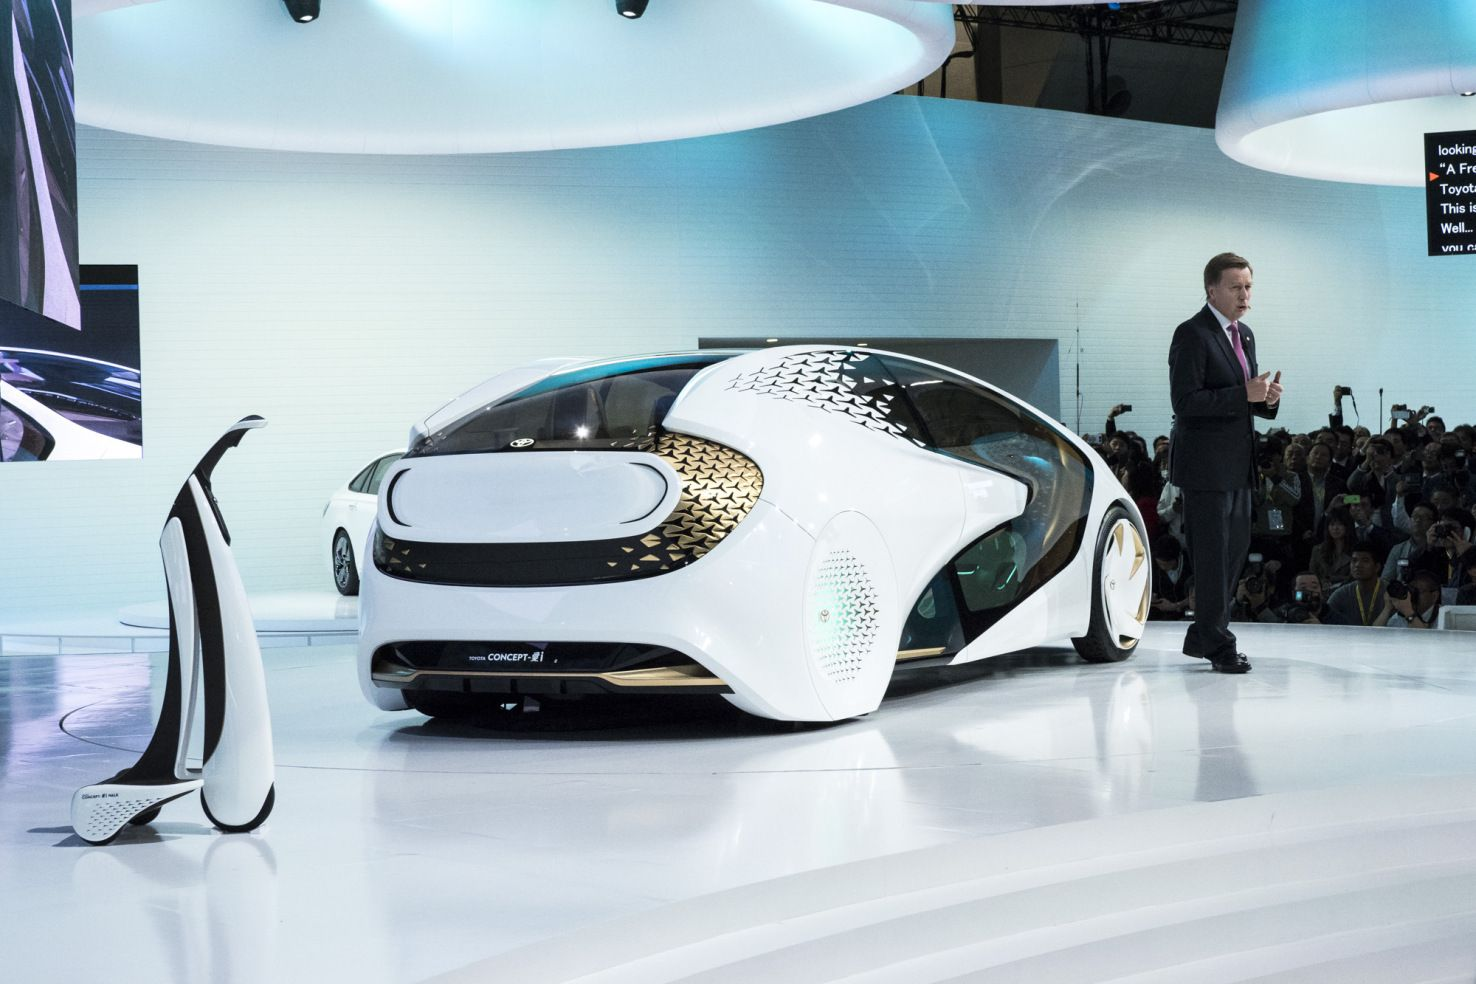 Toyota wants to get us truly crushing on cars (With images